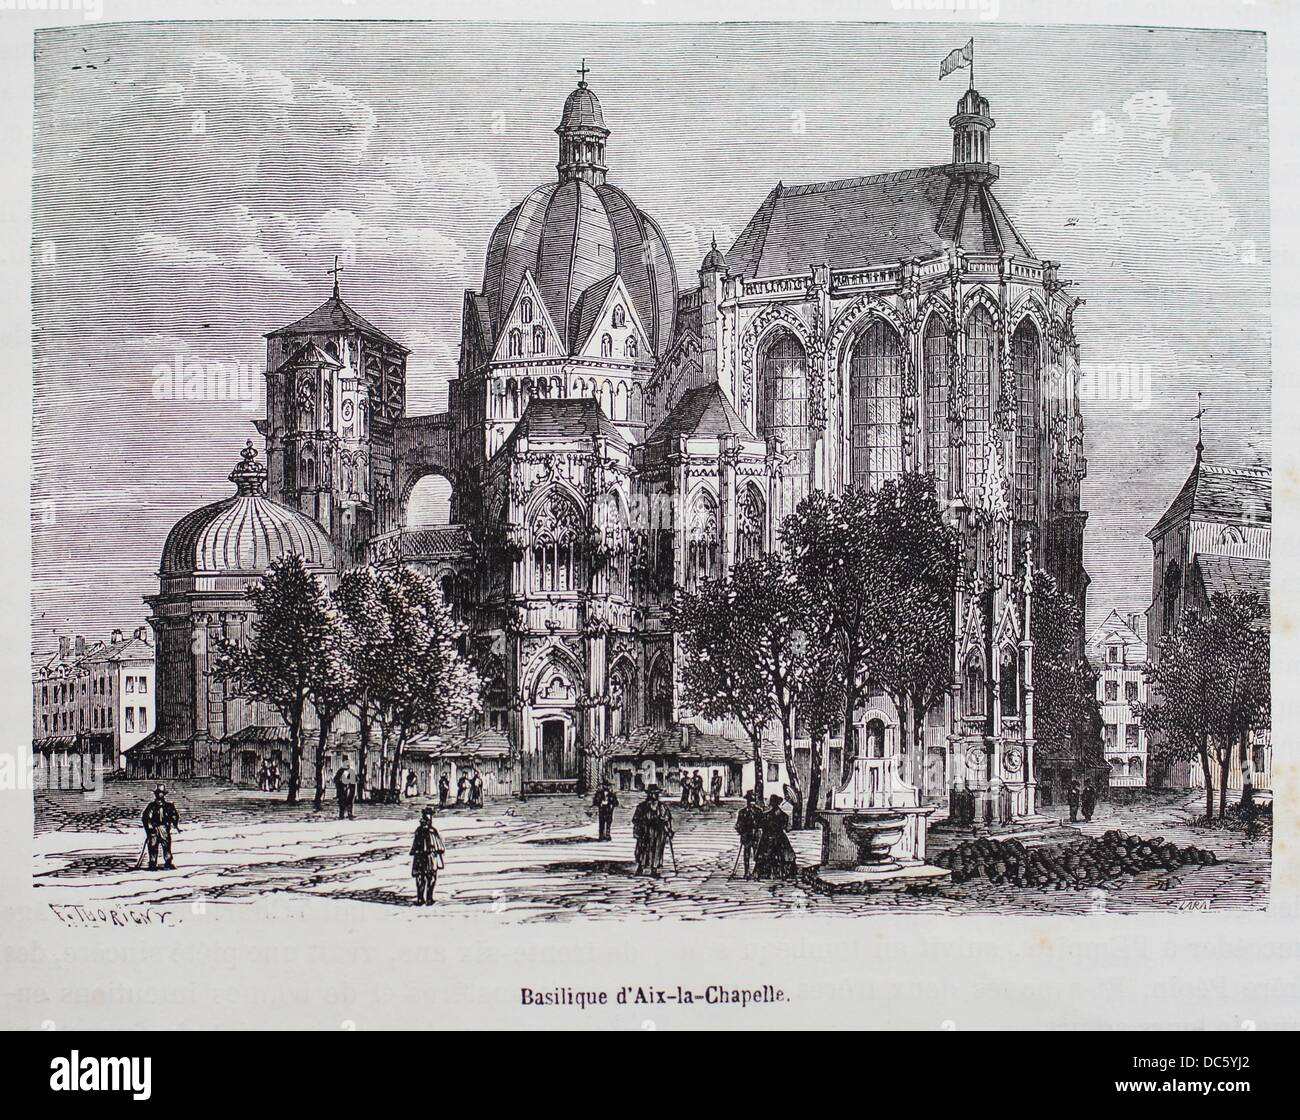 france germany history basilique daix la chapelle aachen cathedral frequently referred to as the imperial cathedral in aix la chapelle cathedral